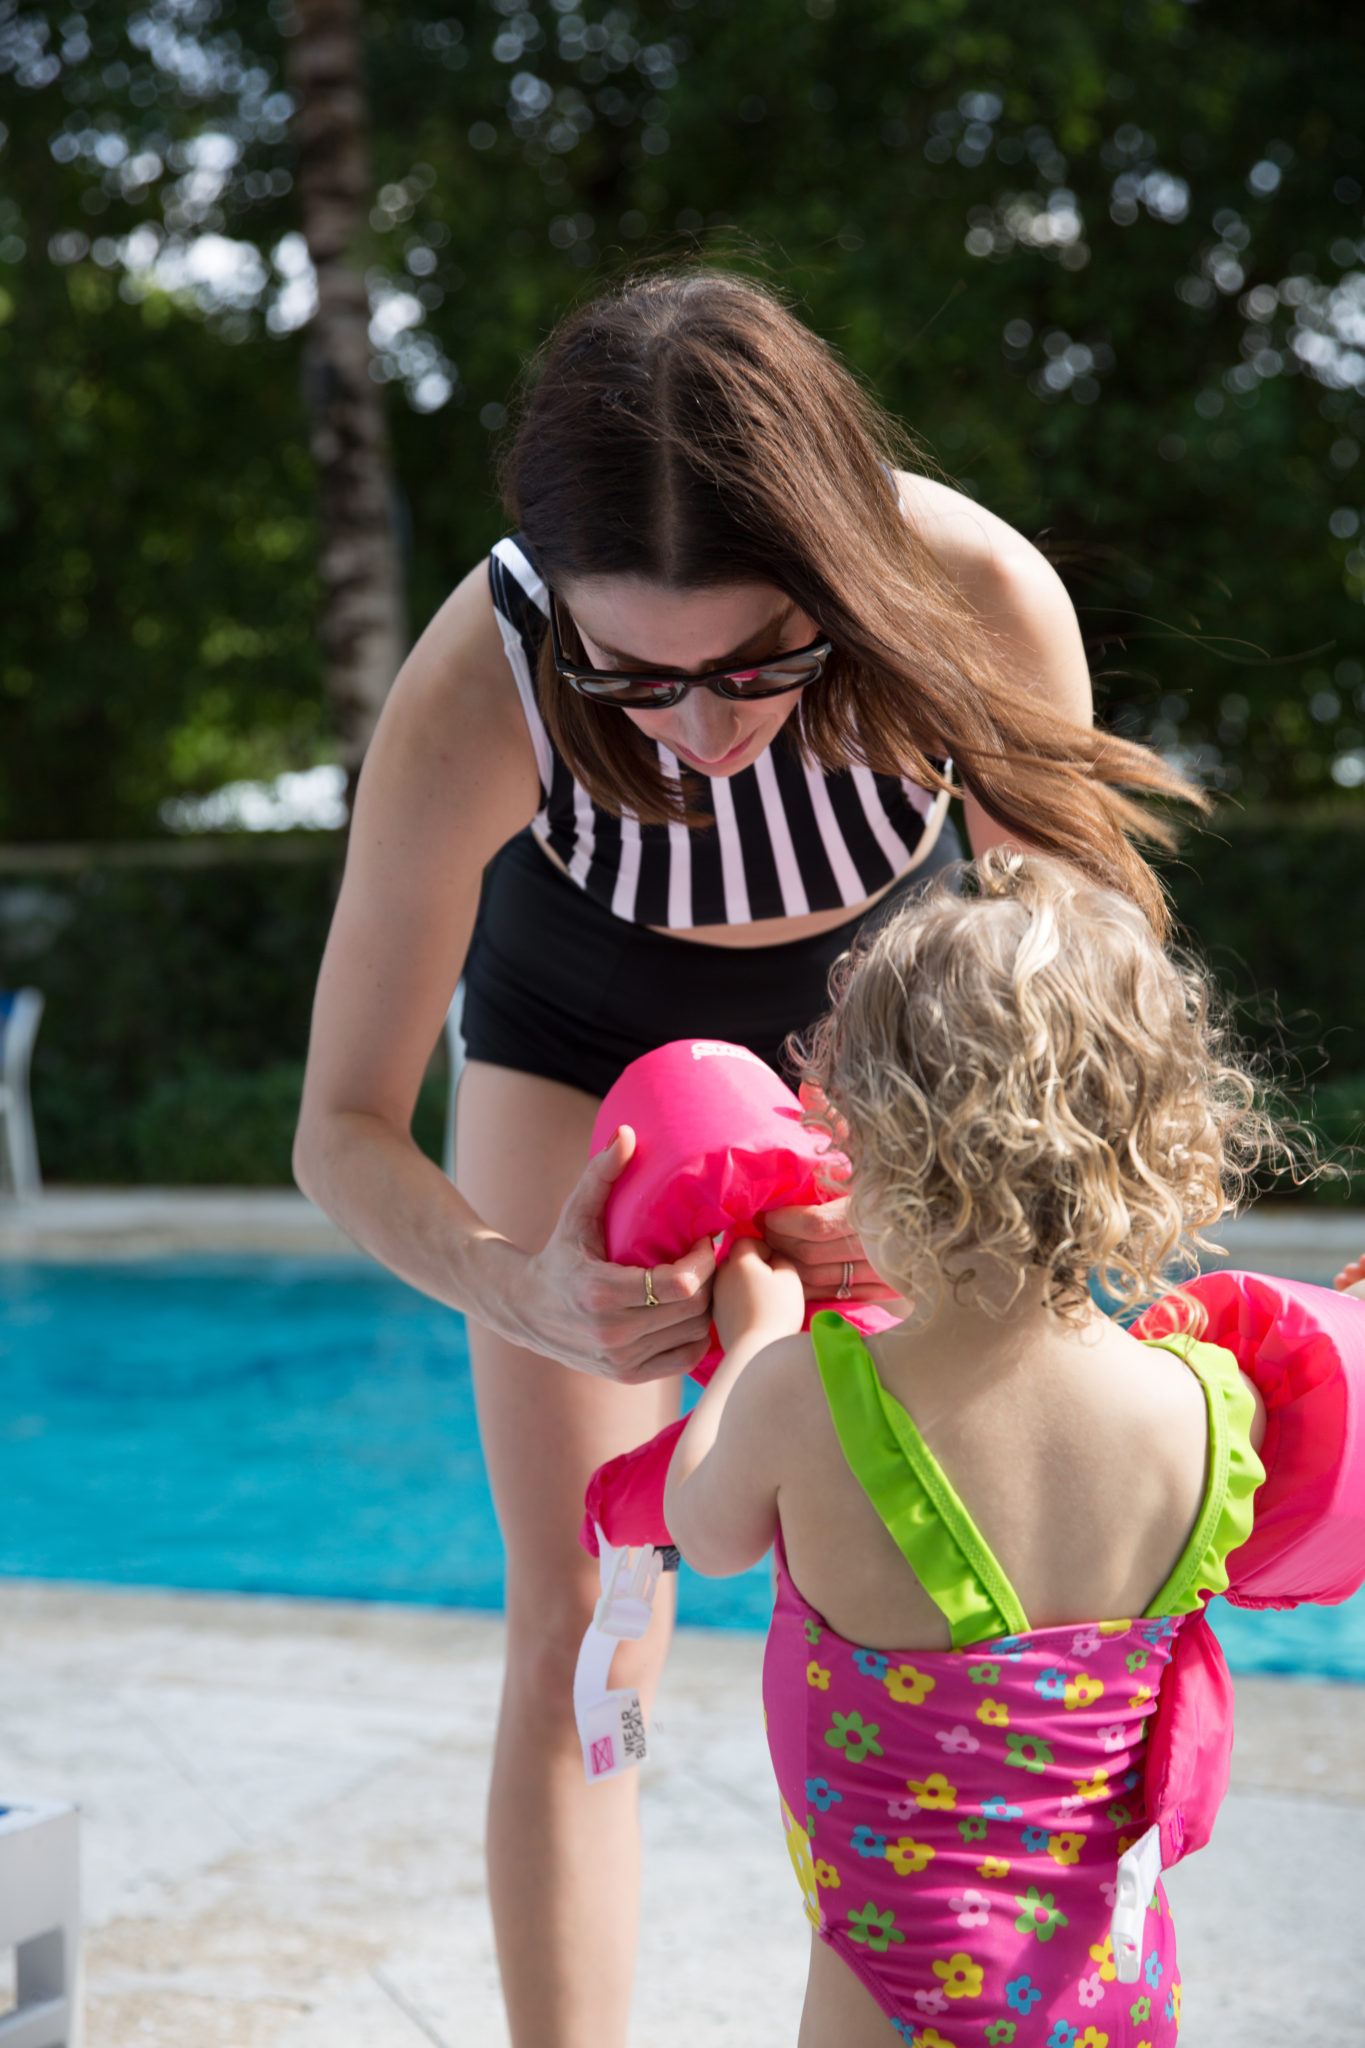 what to do and where to stay in delray beach florida   summer toddler style   summer style   beach style   west palm beach flordia   seagate hotel delray beach florida   family vacation with a toddler